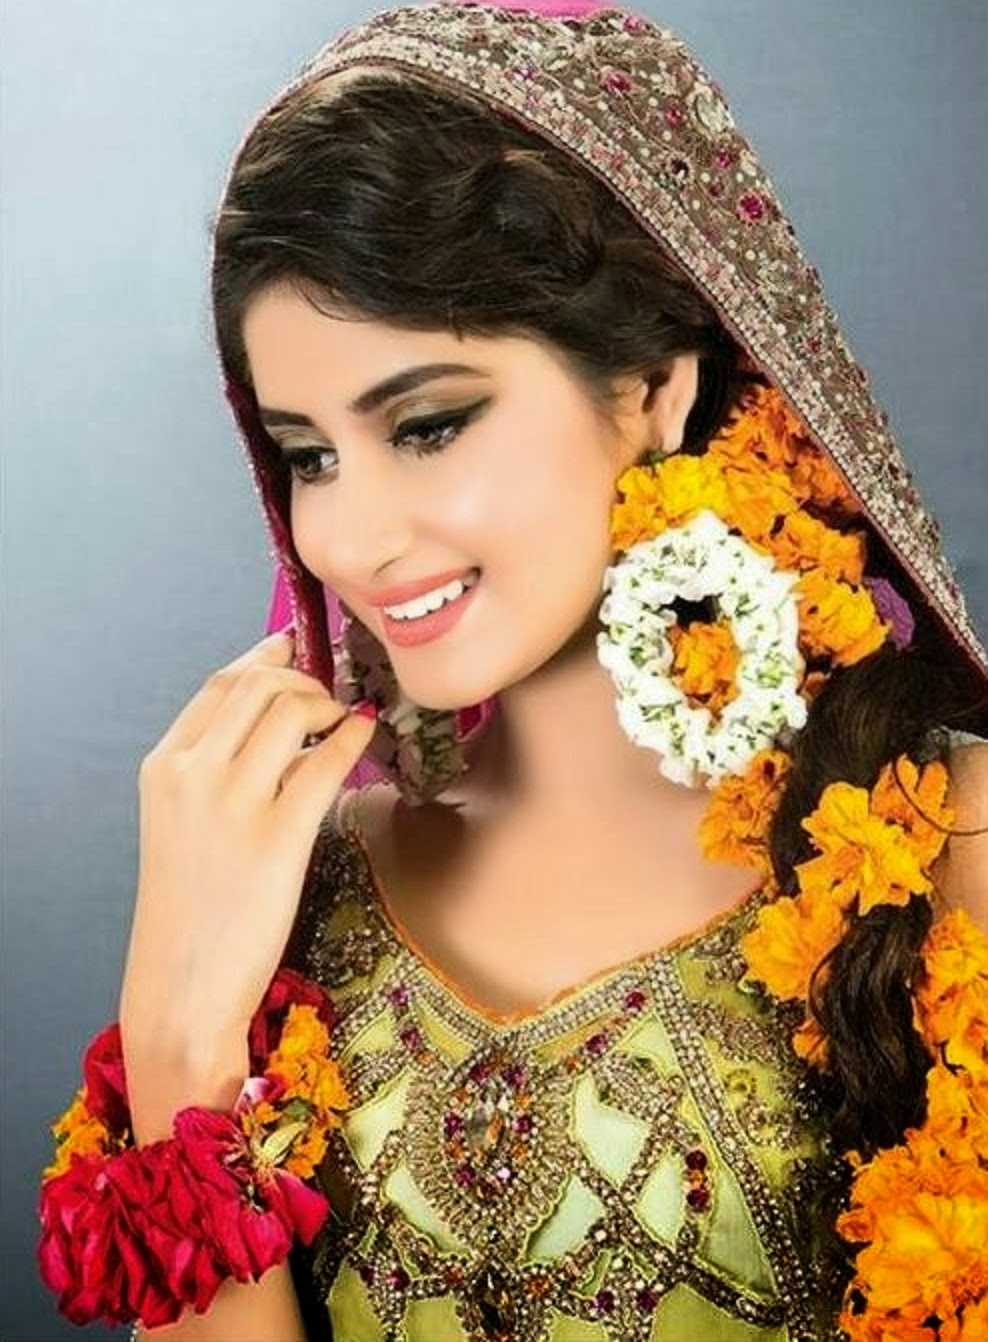 Sajal-Ali-Pictures-dresses-webstudy.pk